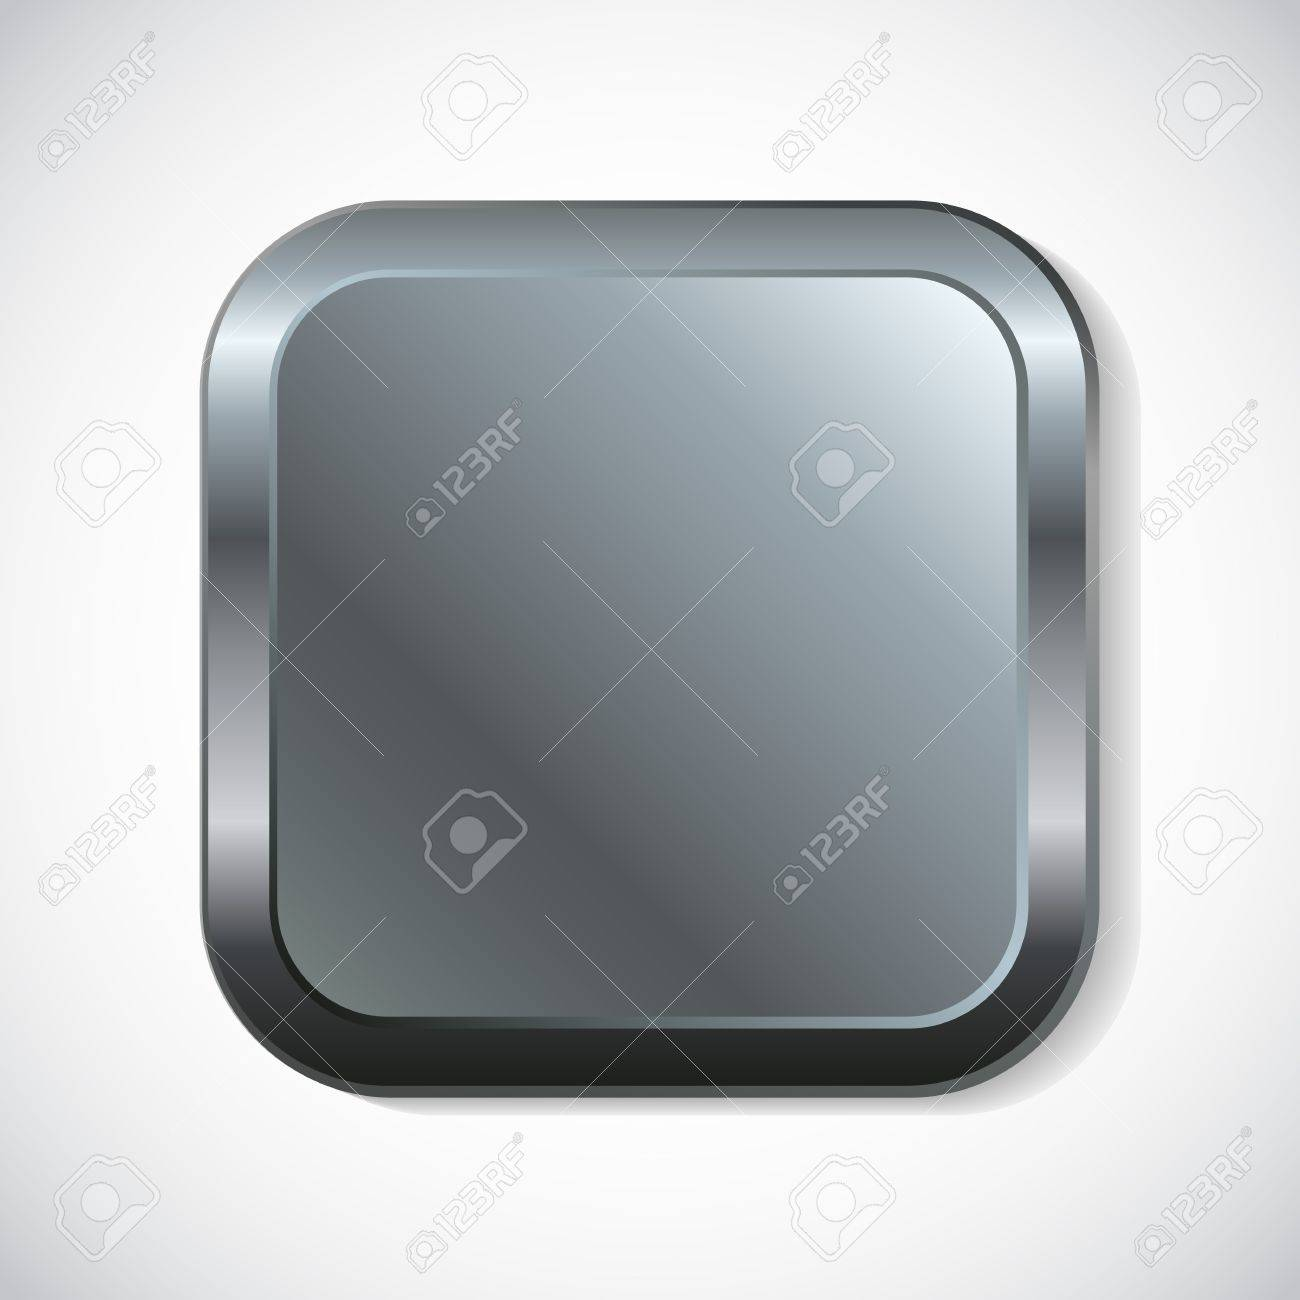 Square metal button with rounded corners Stock Vector - 14907899